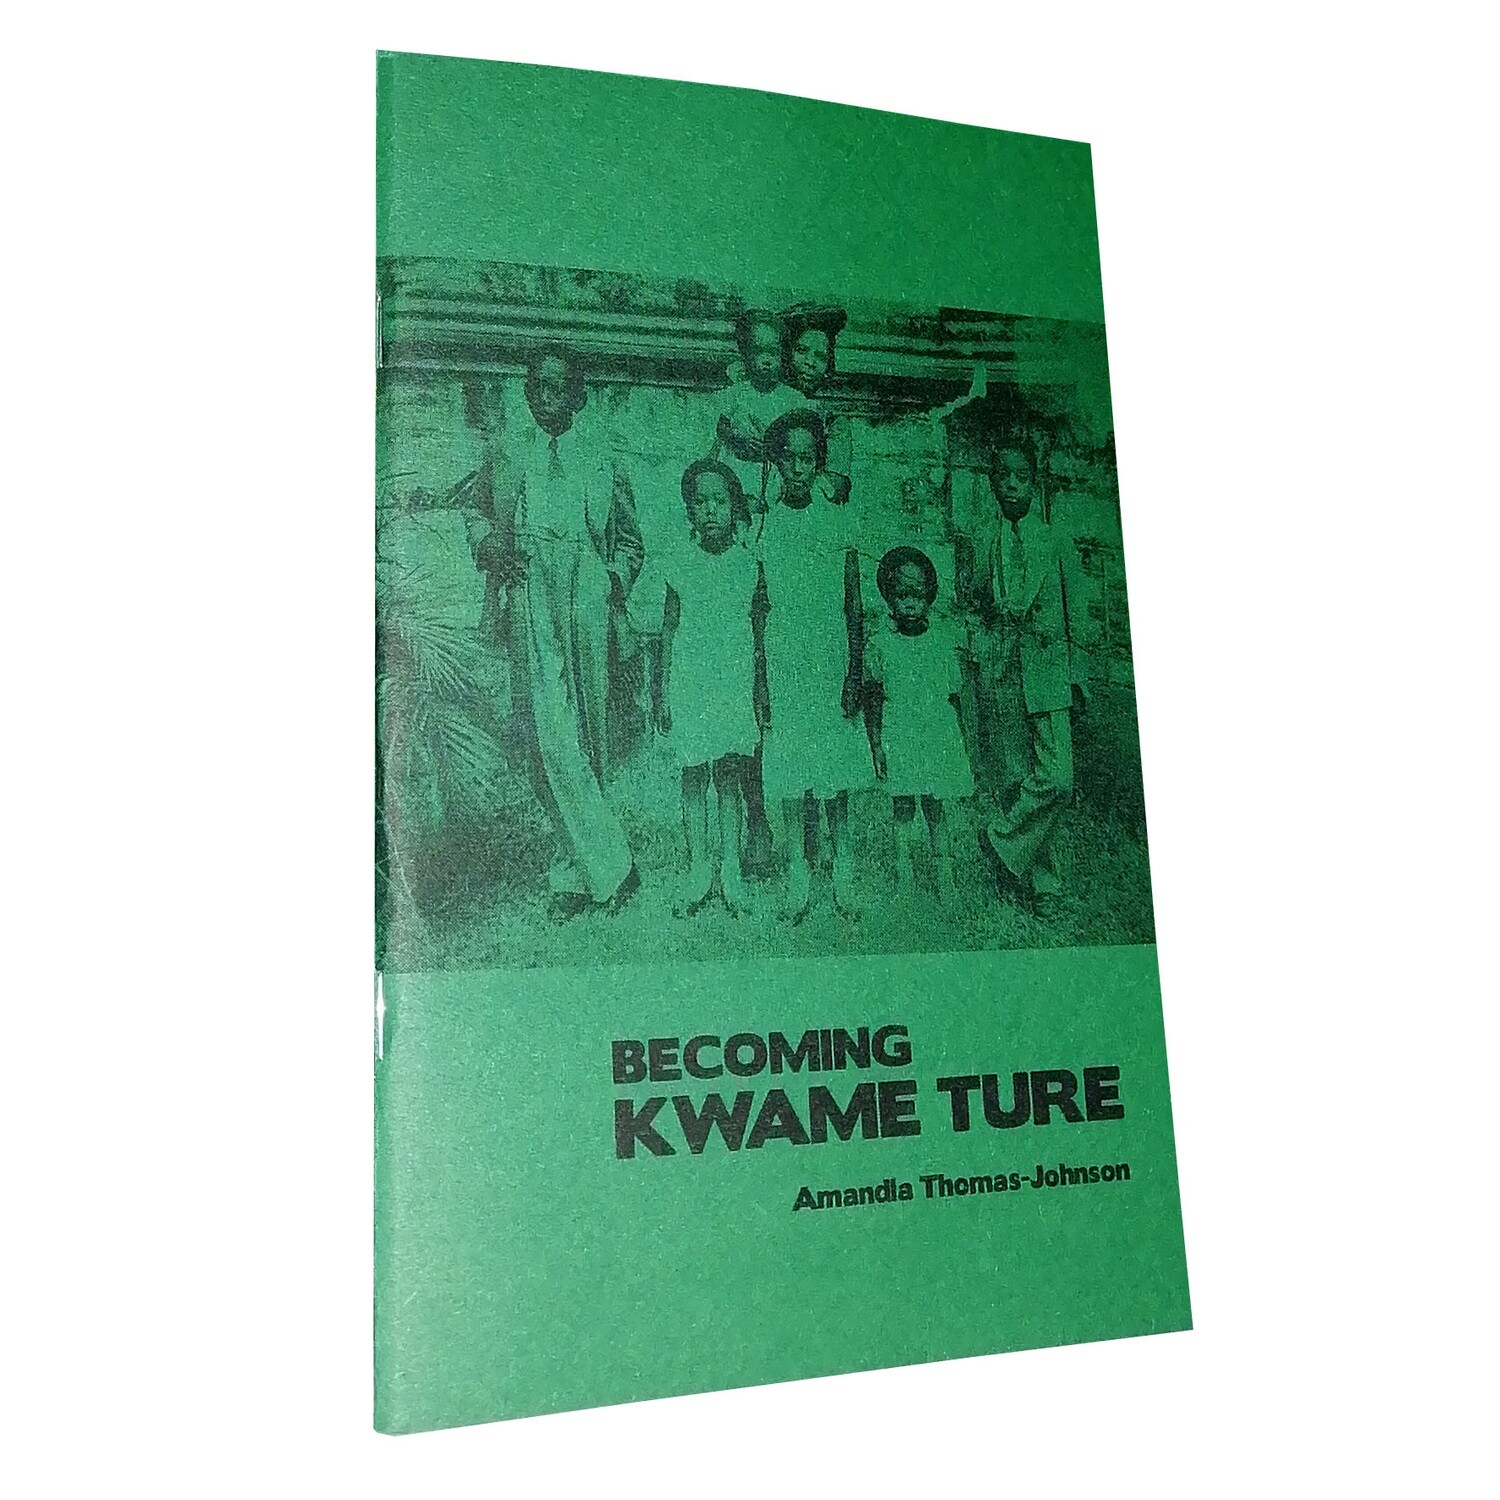 Becoming Kwame Ture by Amandla Thomas-Johnson